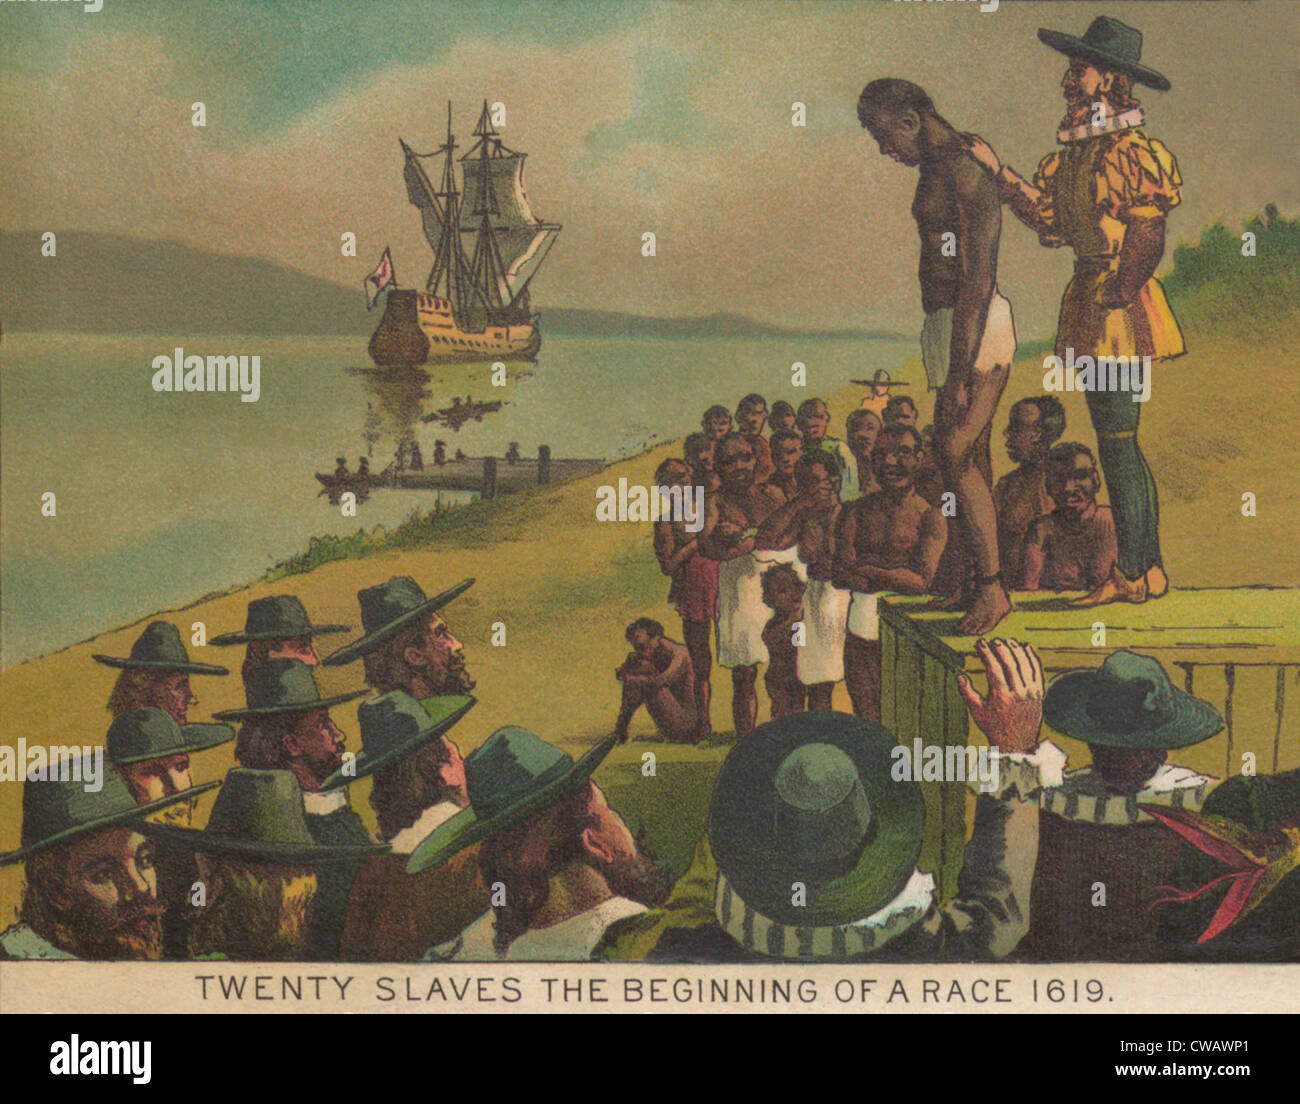 Auctioning of newly arrived African captives in Jamestown, Virginia in 1617. Lithographic illustration of 1897. - Stock Image